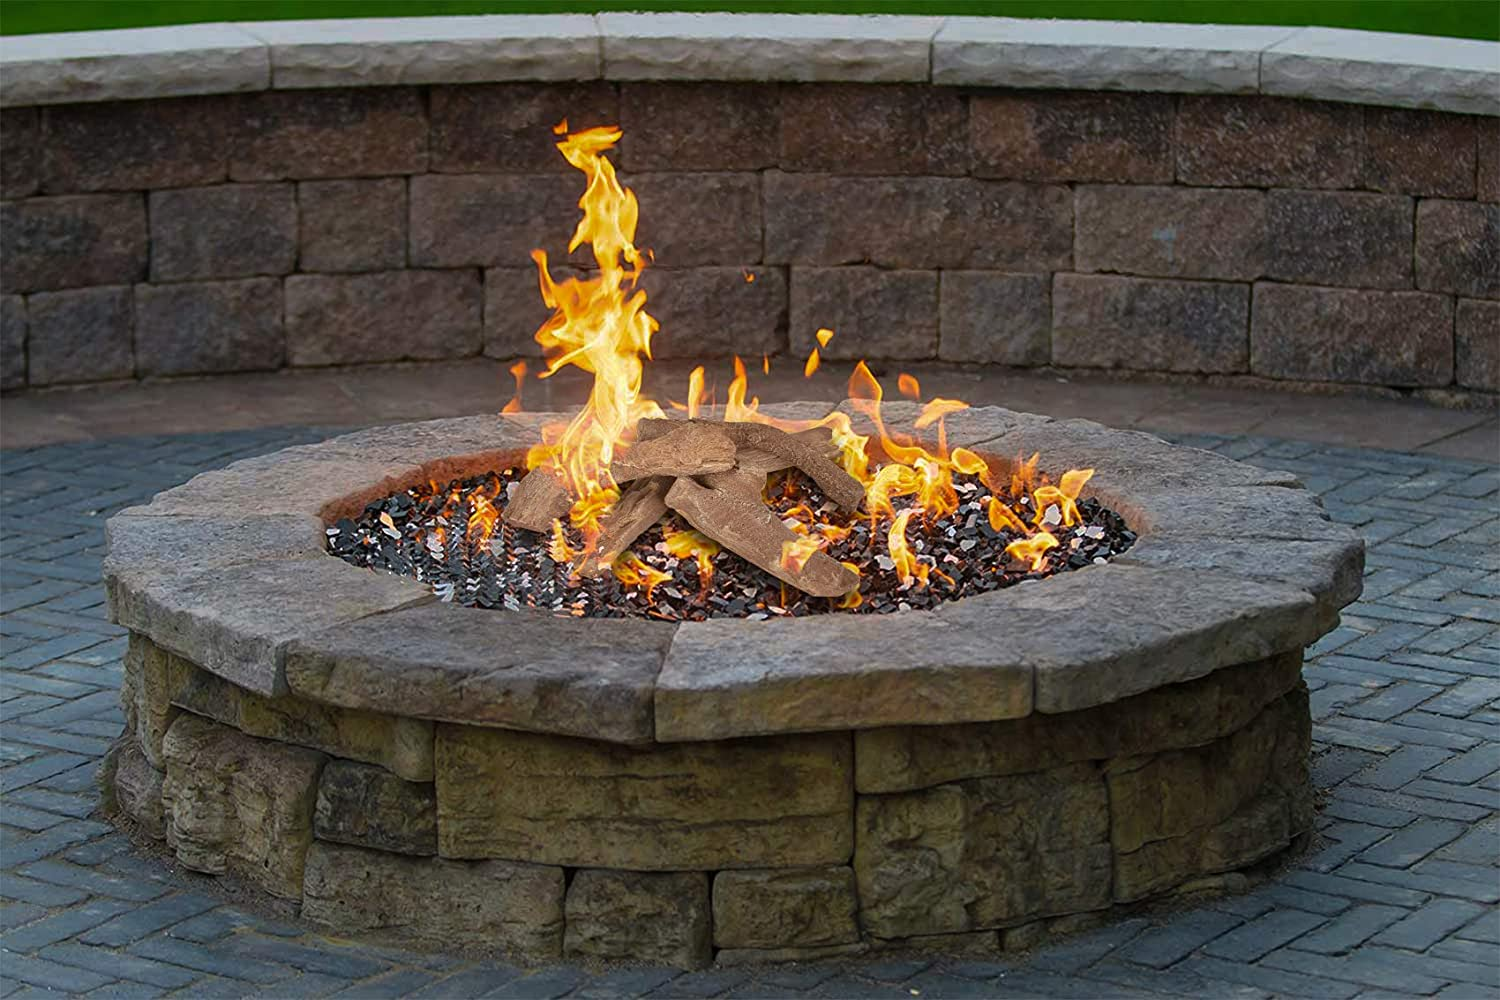 4 Piece Set Propane Stanbroil Fireplace Wood Logs for All Types of Ventless Gel Indooror or Outdoor Fireplaces and Fire Pits Electric Ethanol